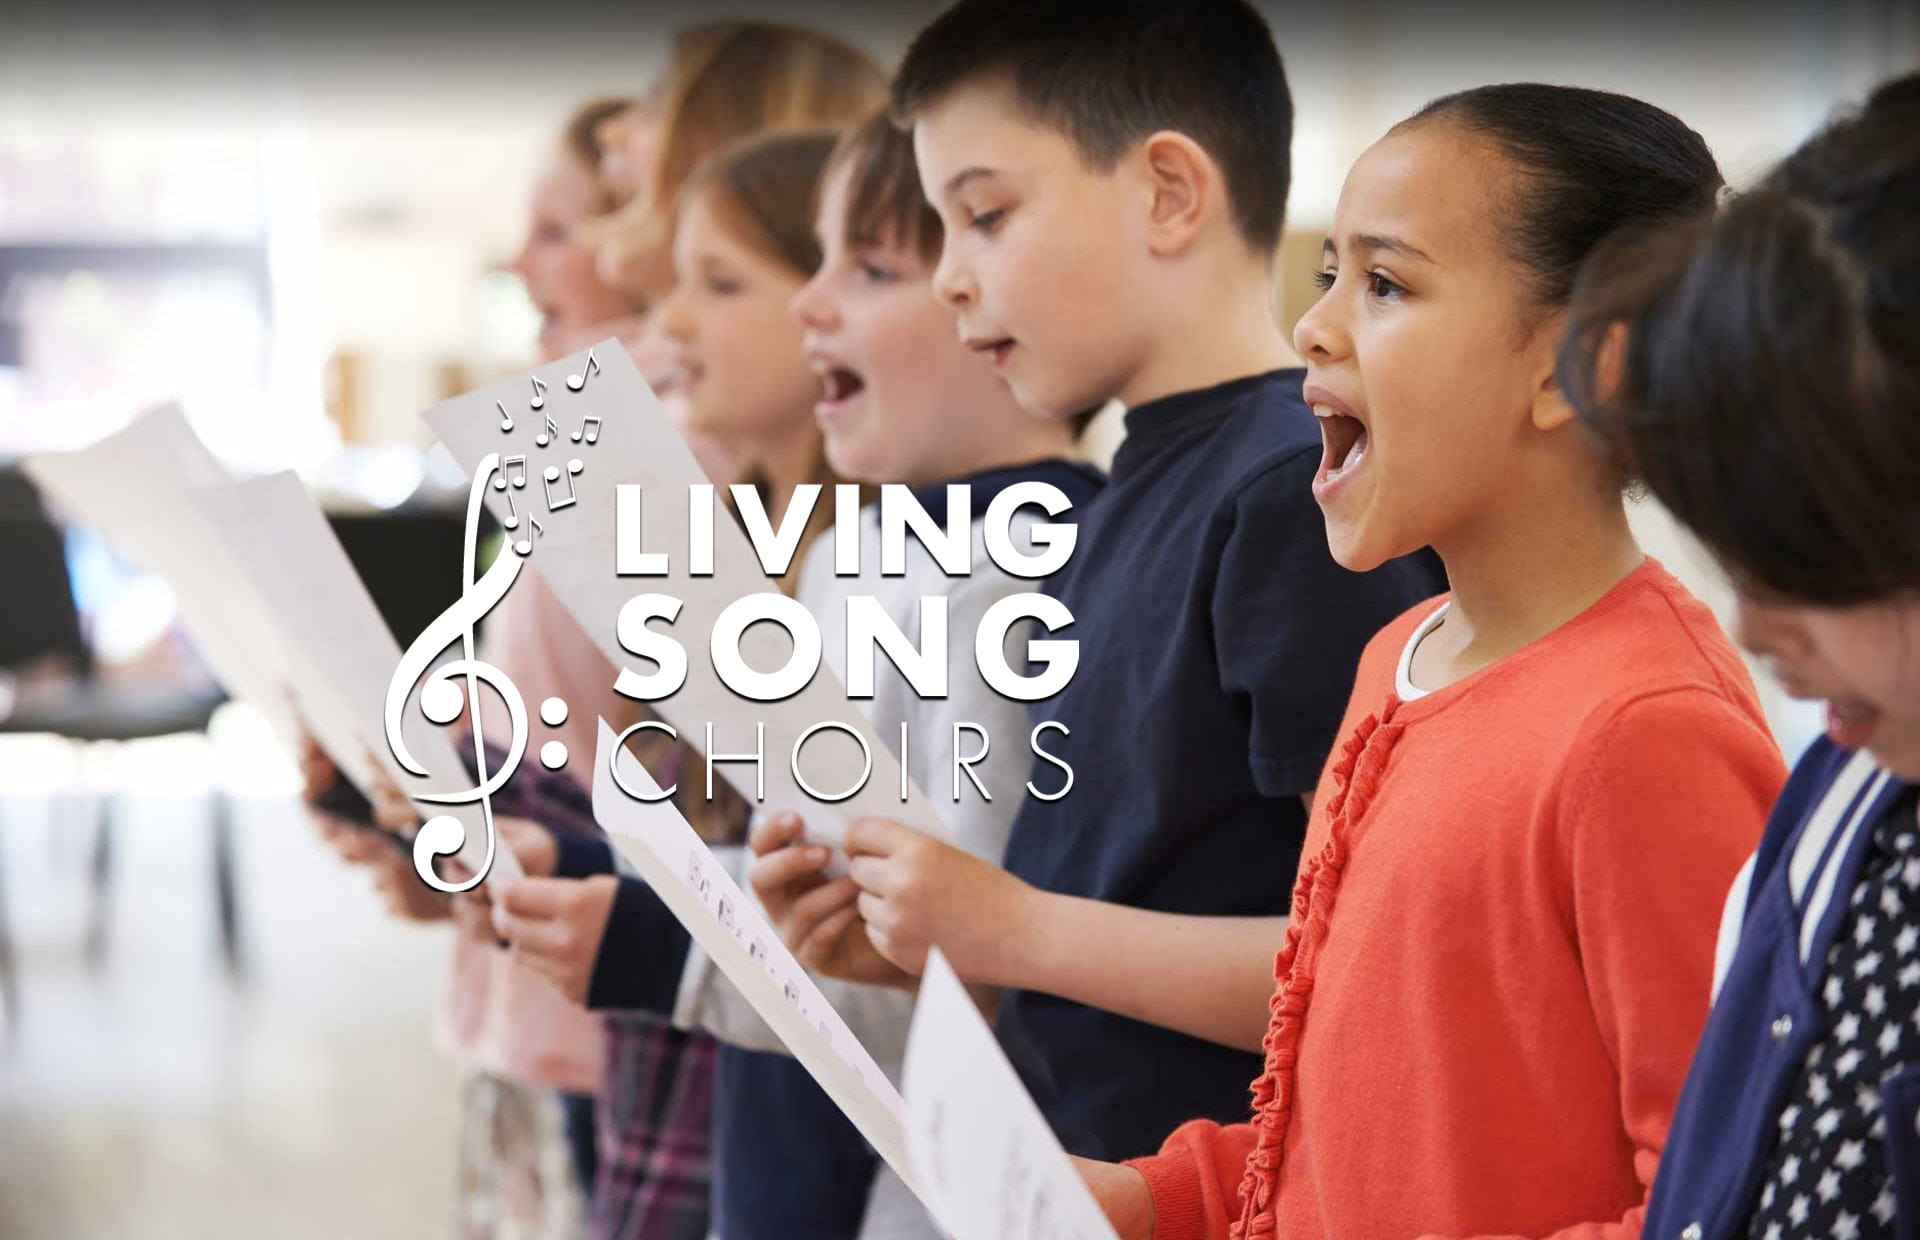 Children singing with Living Song Choirs logo